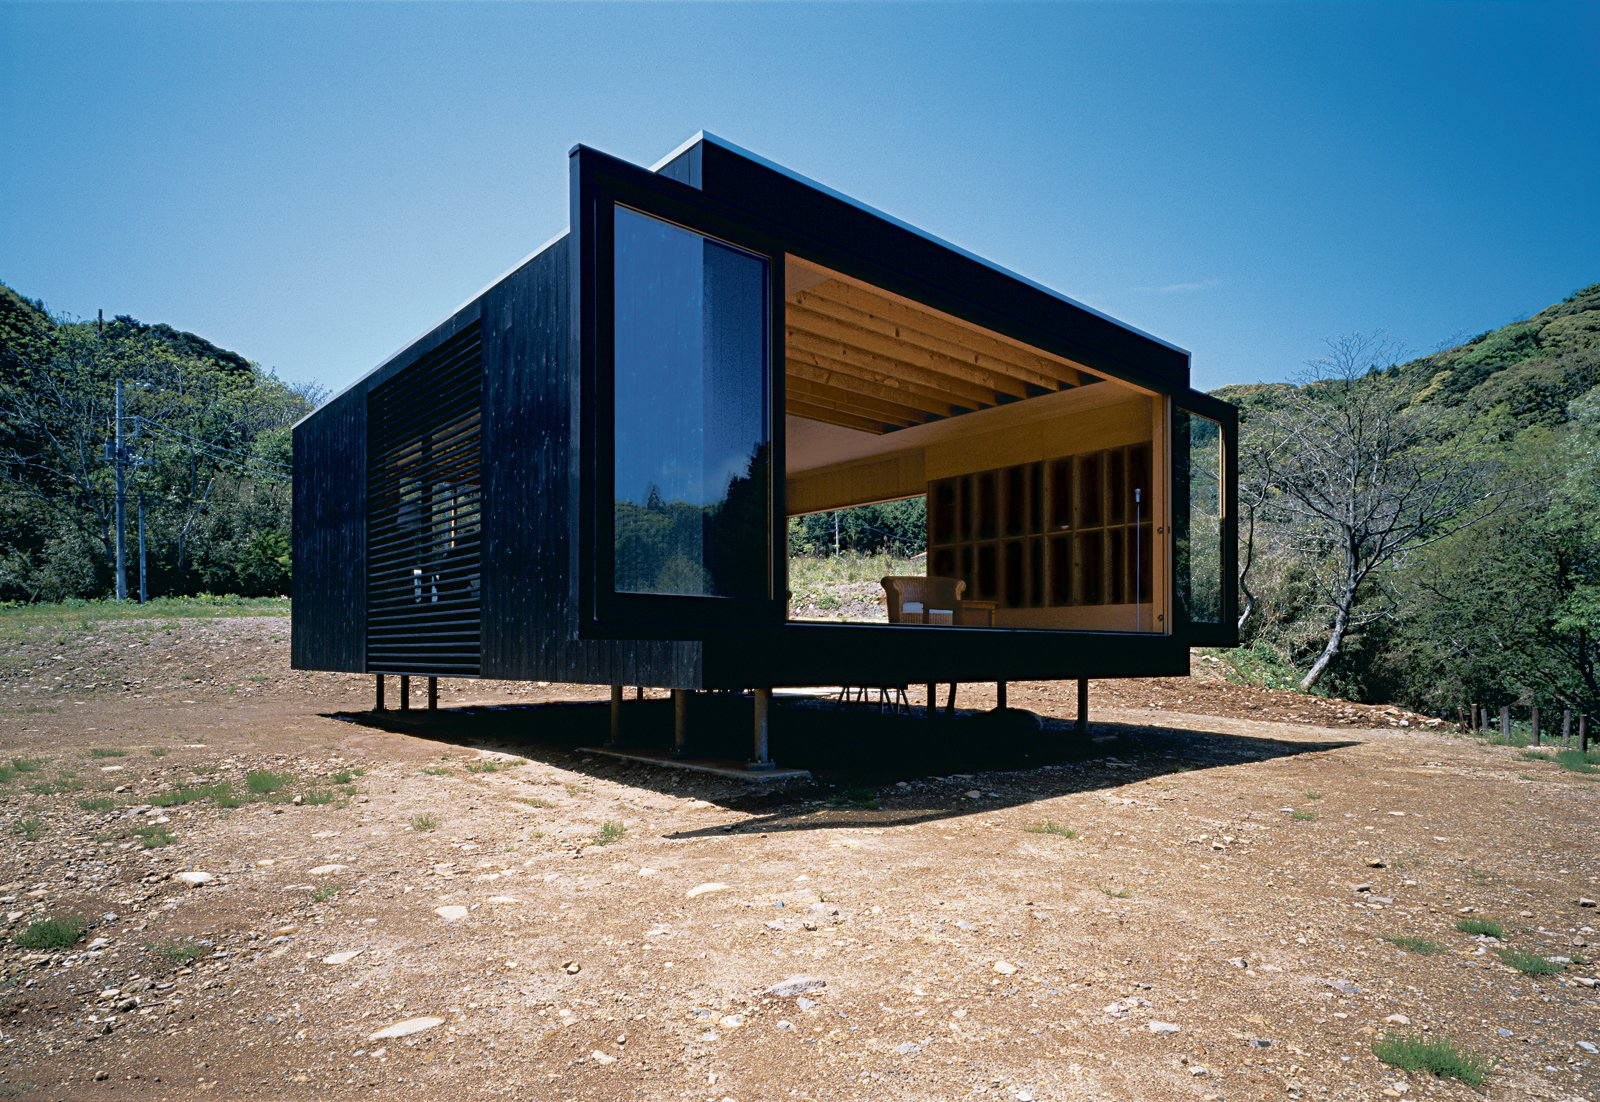 The resident, a Tokyo transplant, commissioned architect Tadashi Murai to create a fully-equipped structure that comes with its own power, heating and cooling, water, and waste-disposal systems. 15 Modern Homes with Black Exteriors - Photo 2 of 15